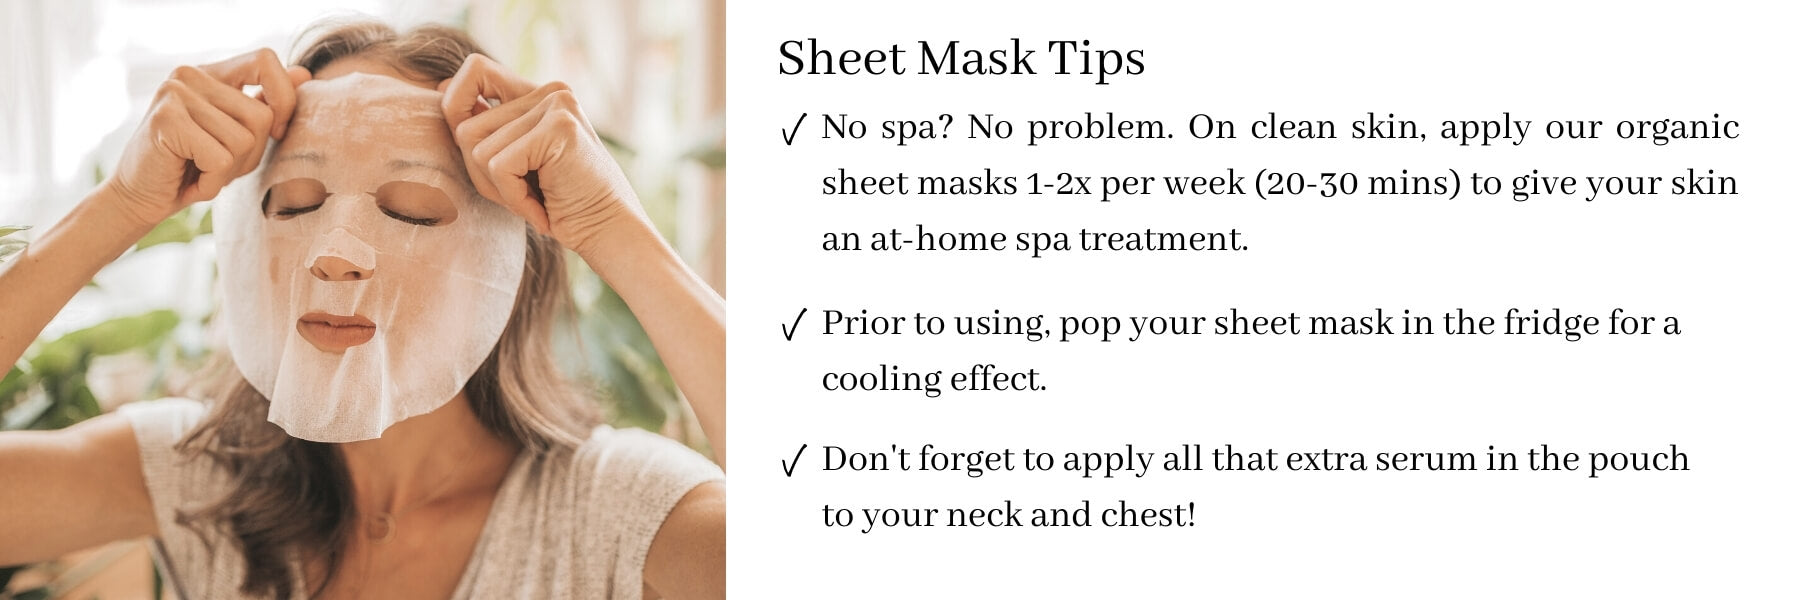 ORGAID Sheet Mask Tips